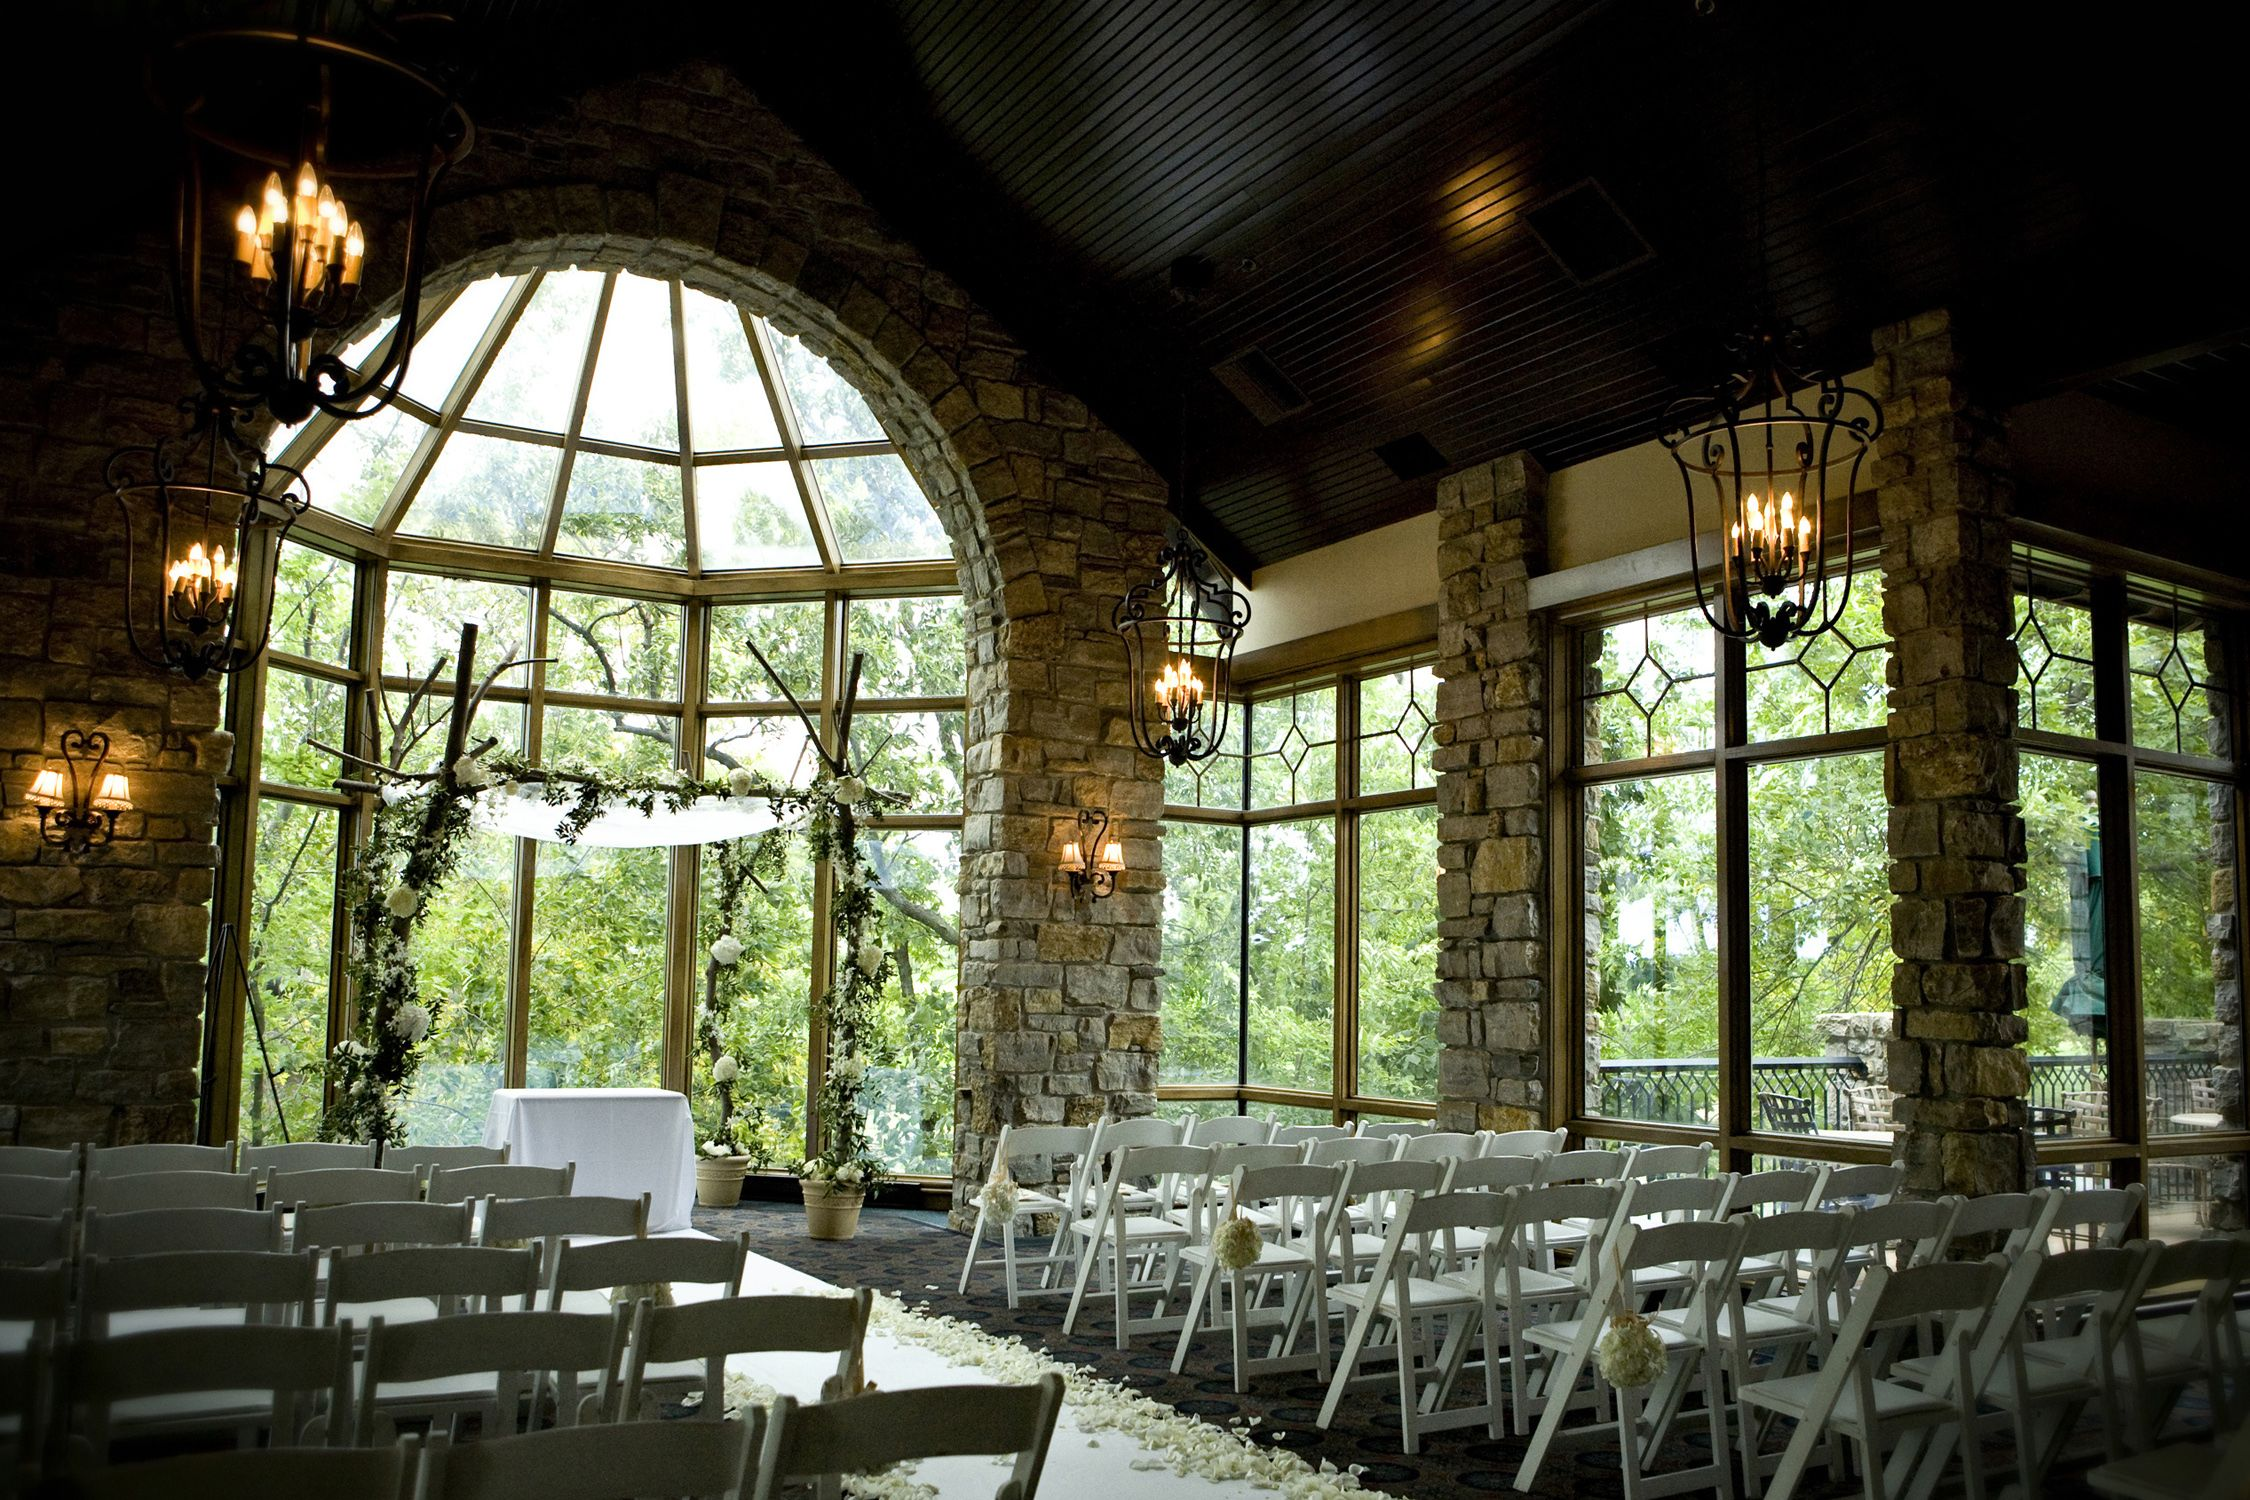 Pin By Brittany Majestic On Wedding Venues Local Kansas City Wedding Venues Missouri Wedding Venues Kansas City Wedding